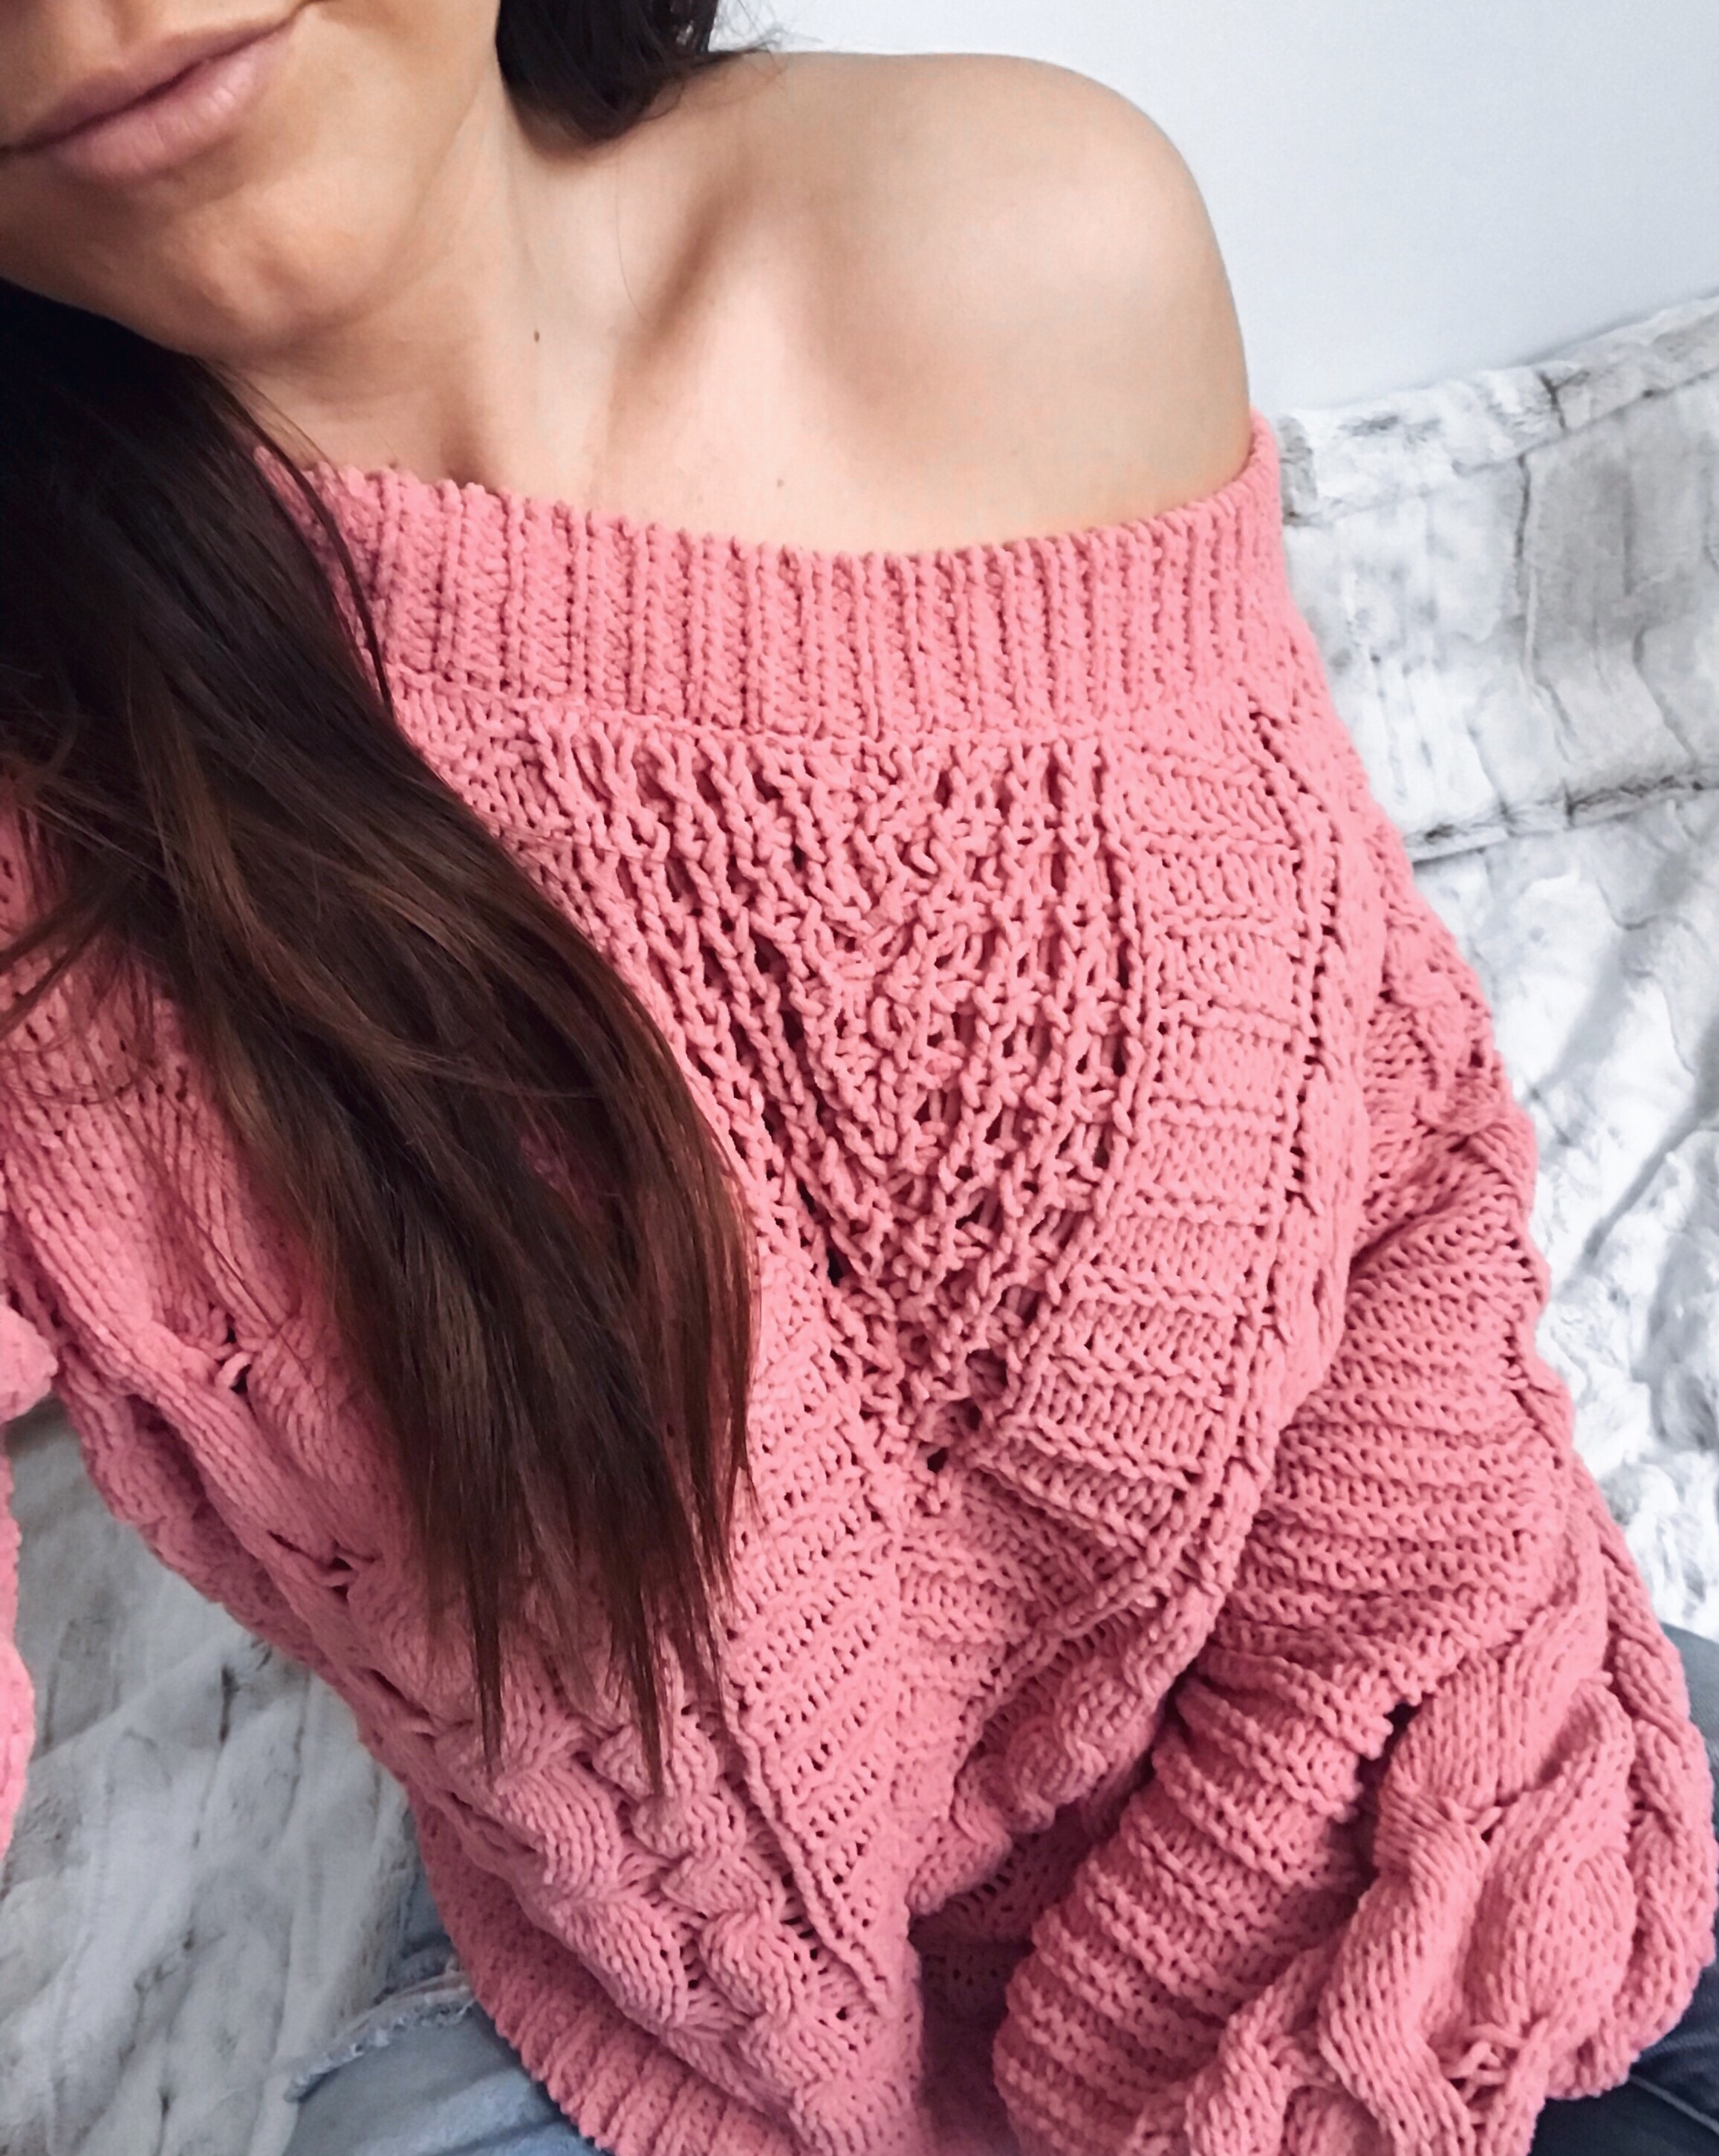 Weekend Sales + Free Shipping Day | Pine Barren Beauty | winter fashion, winter outfit idea, winter outfit inspiration, cozy sweater, sweater weather, off the shoulder sweater, chenille sweater, express sale